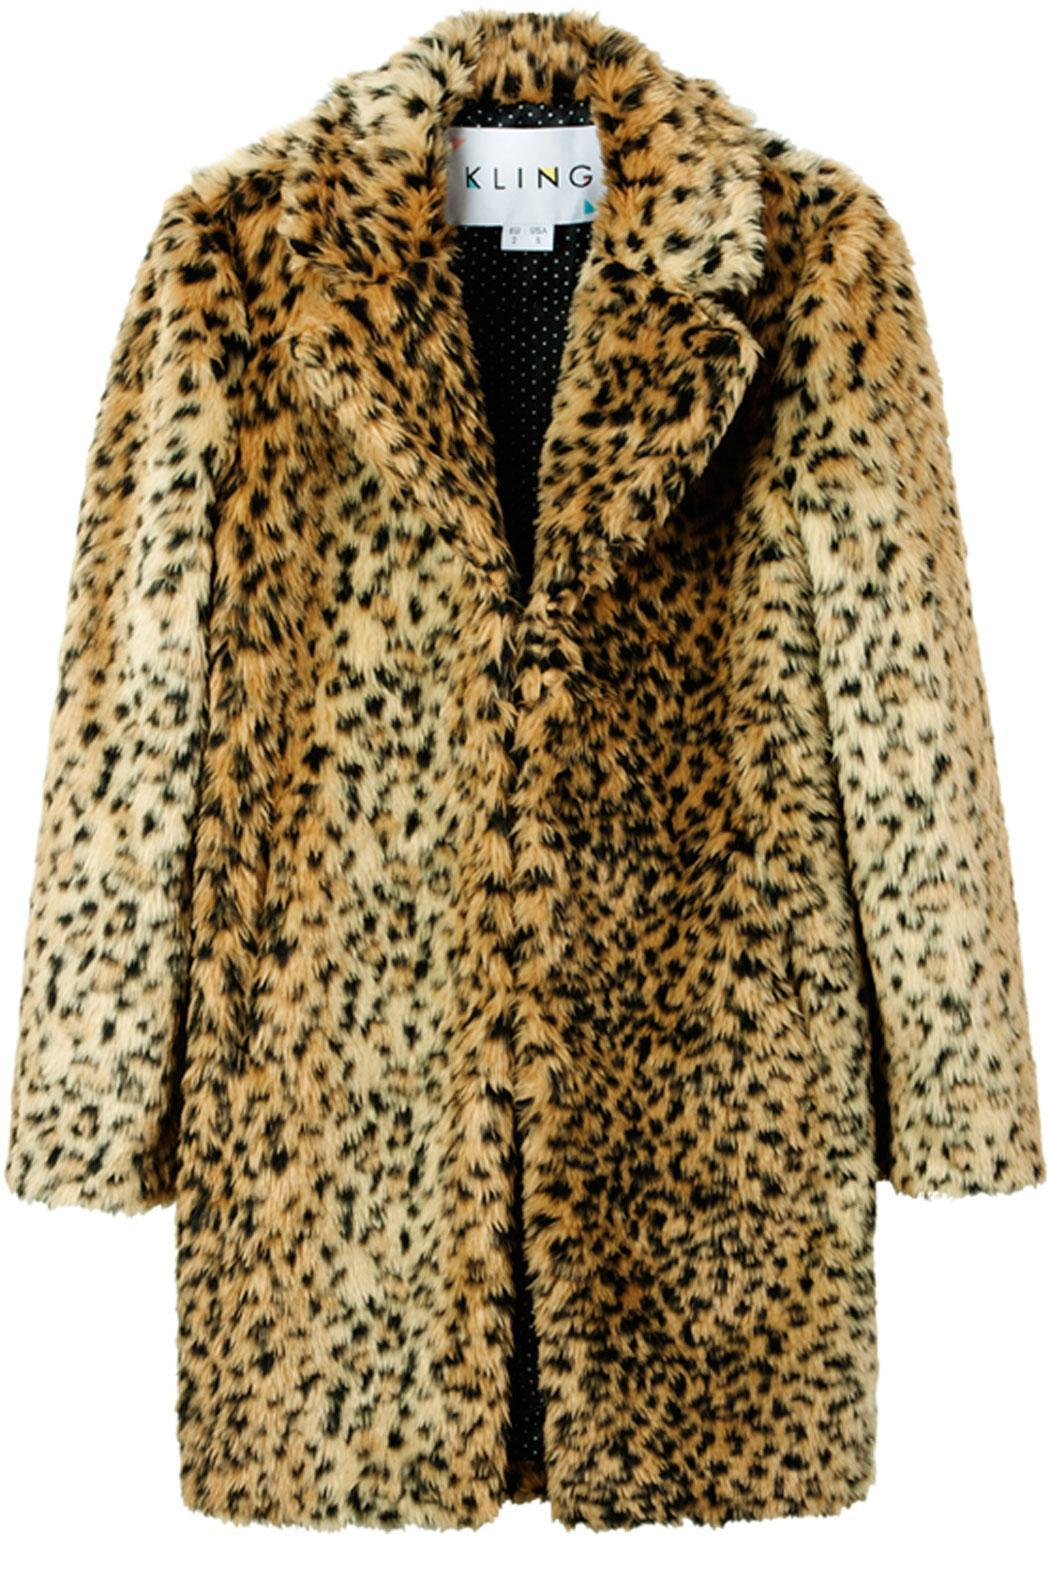 Kling Ursa Cheetah Coat - Main Image